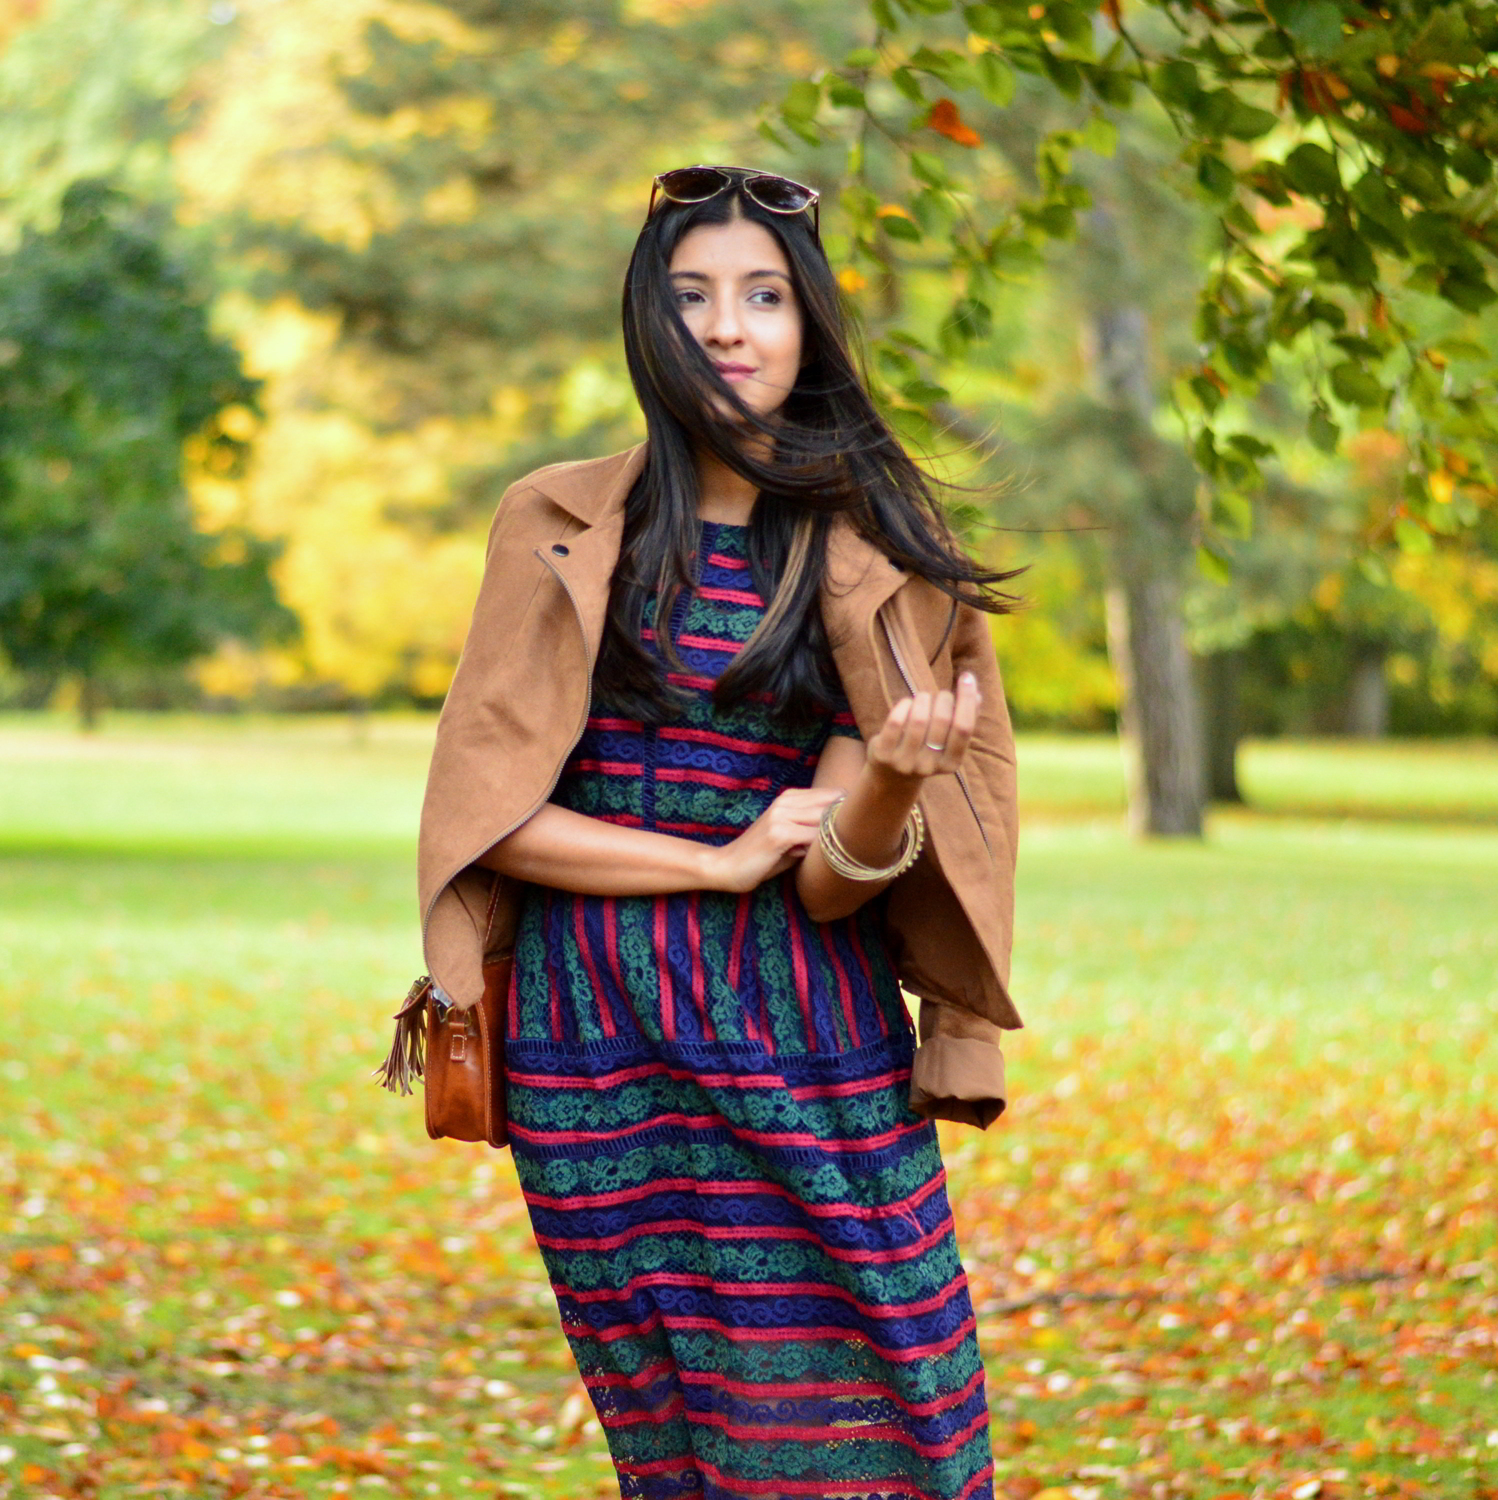 lace-multicolored-maxi-dress-suede-jacket-fall-style-blogger-outfit 2